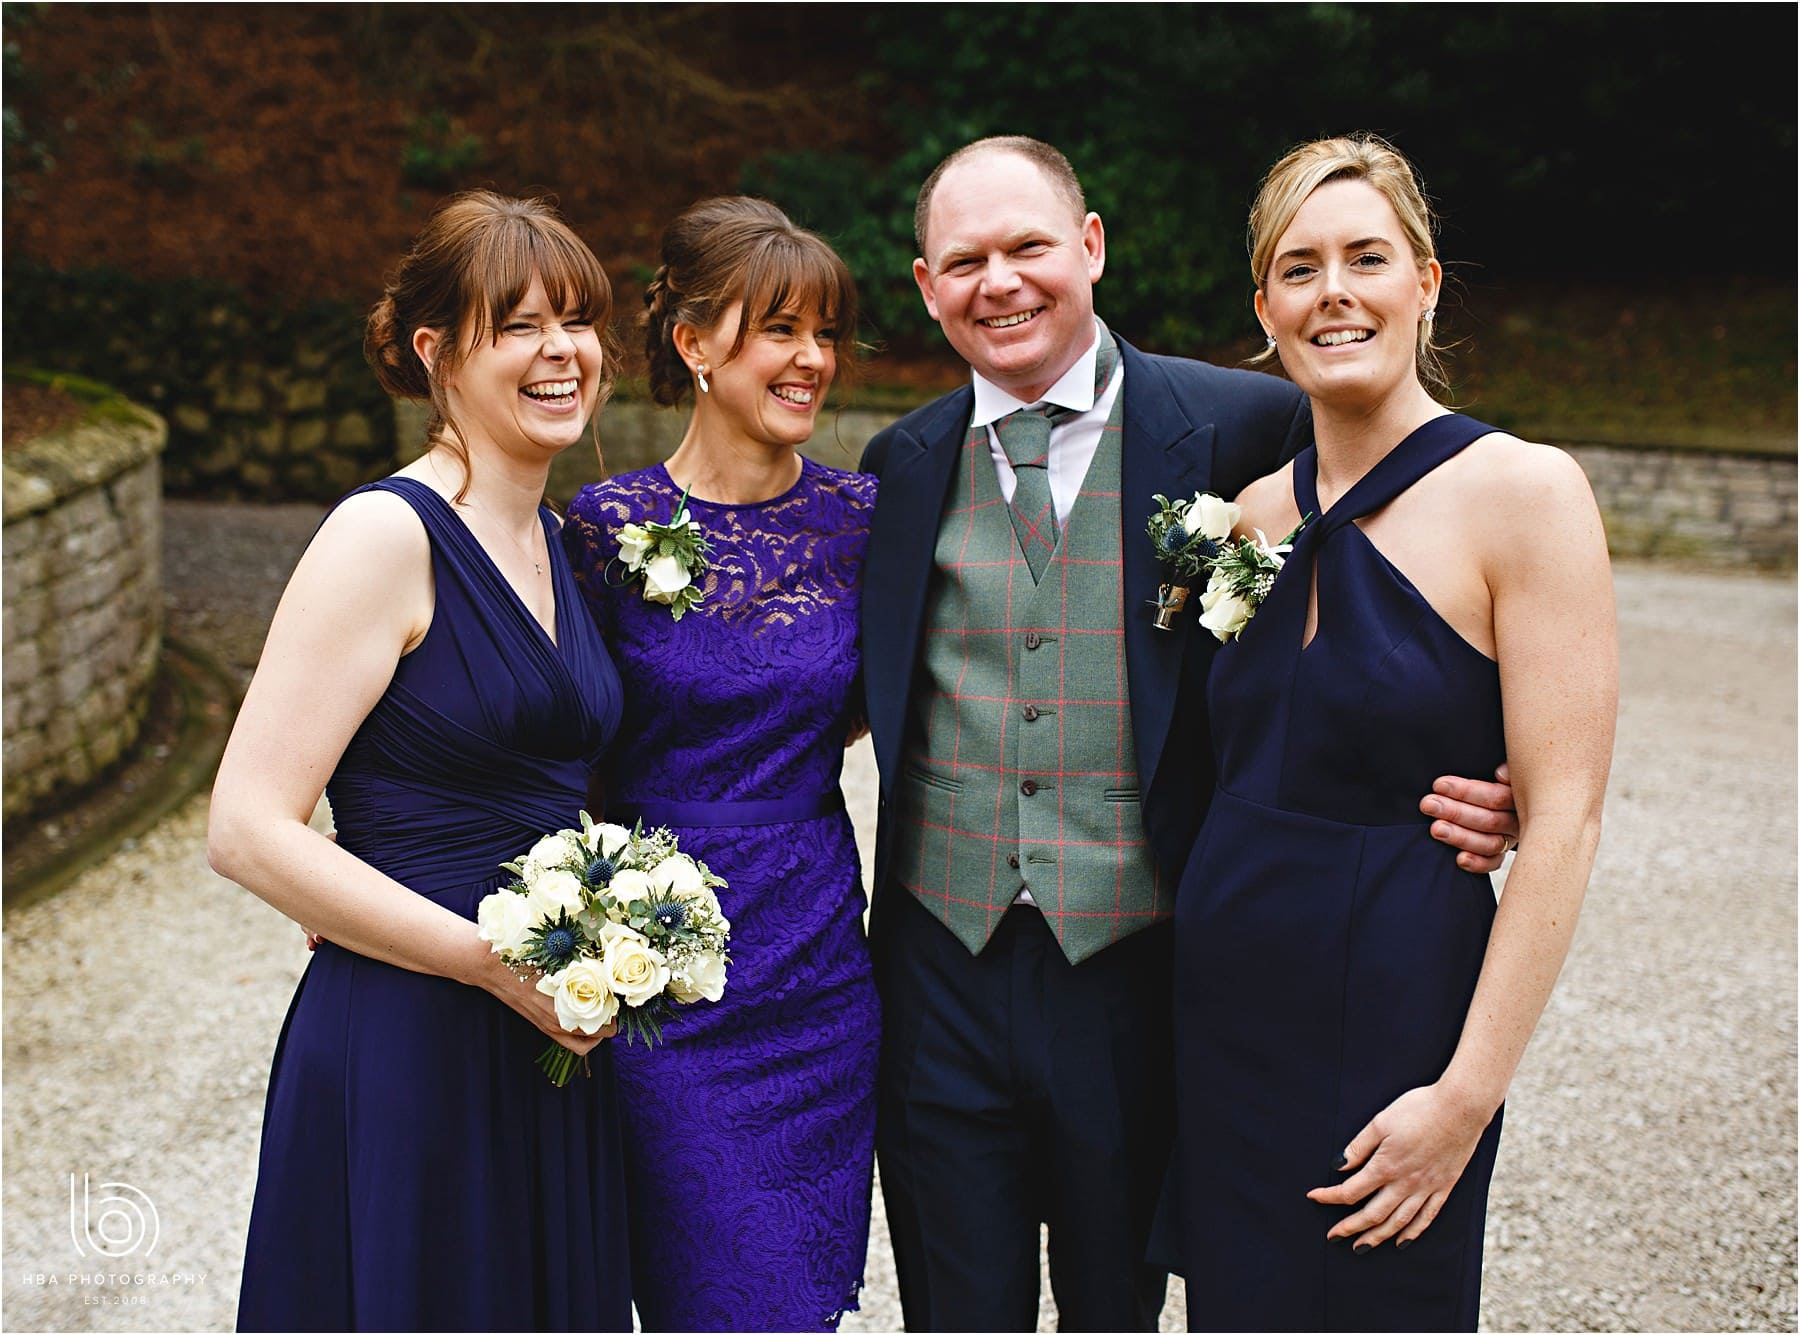 Dad and his daughters together at the wedding